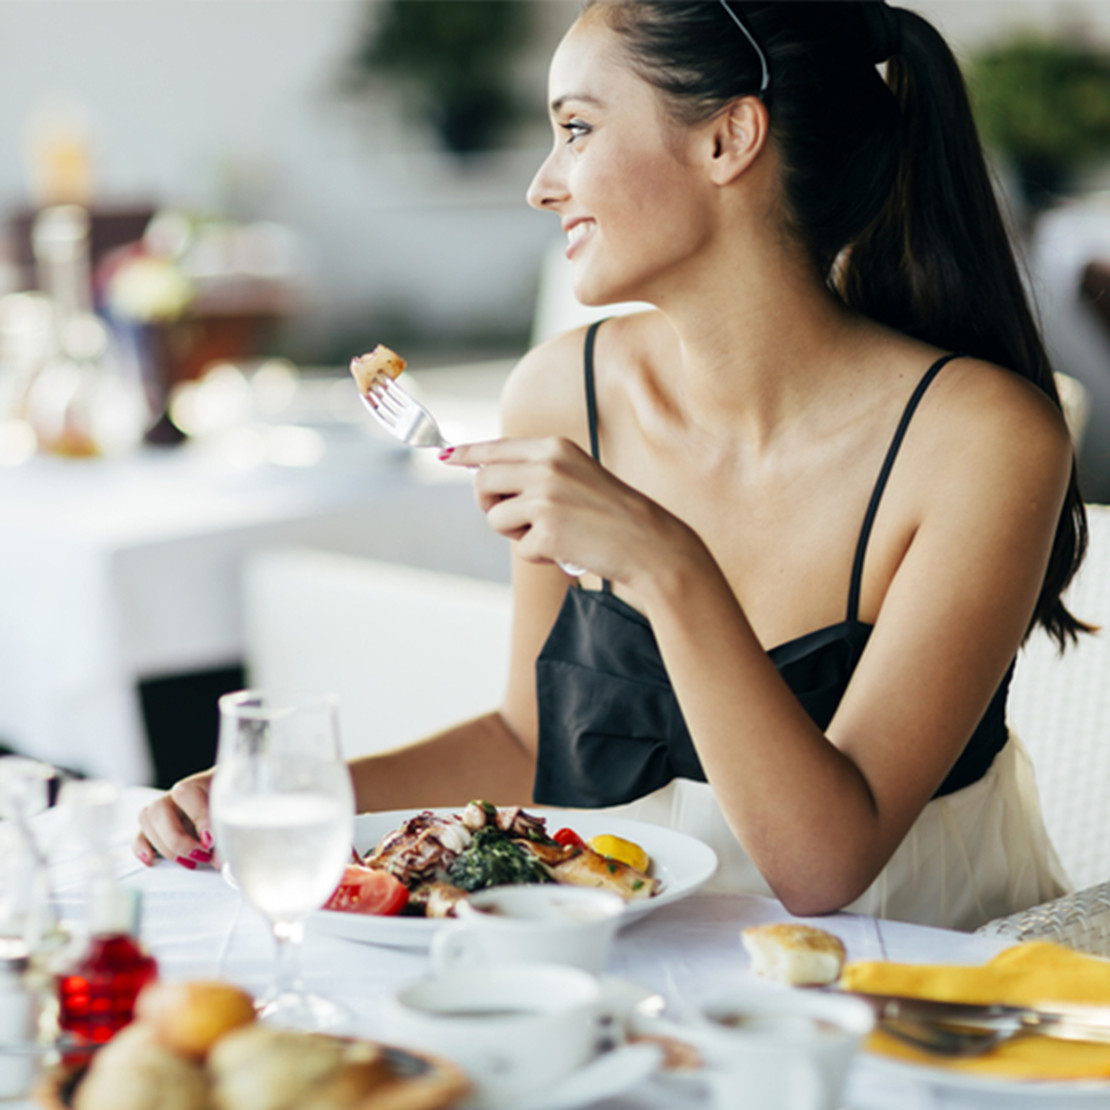 7 Foods You Need to Break Up With